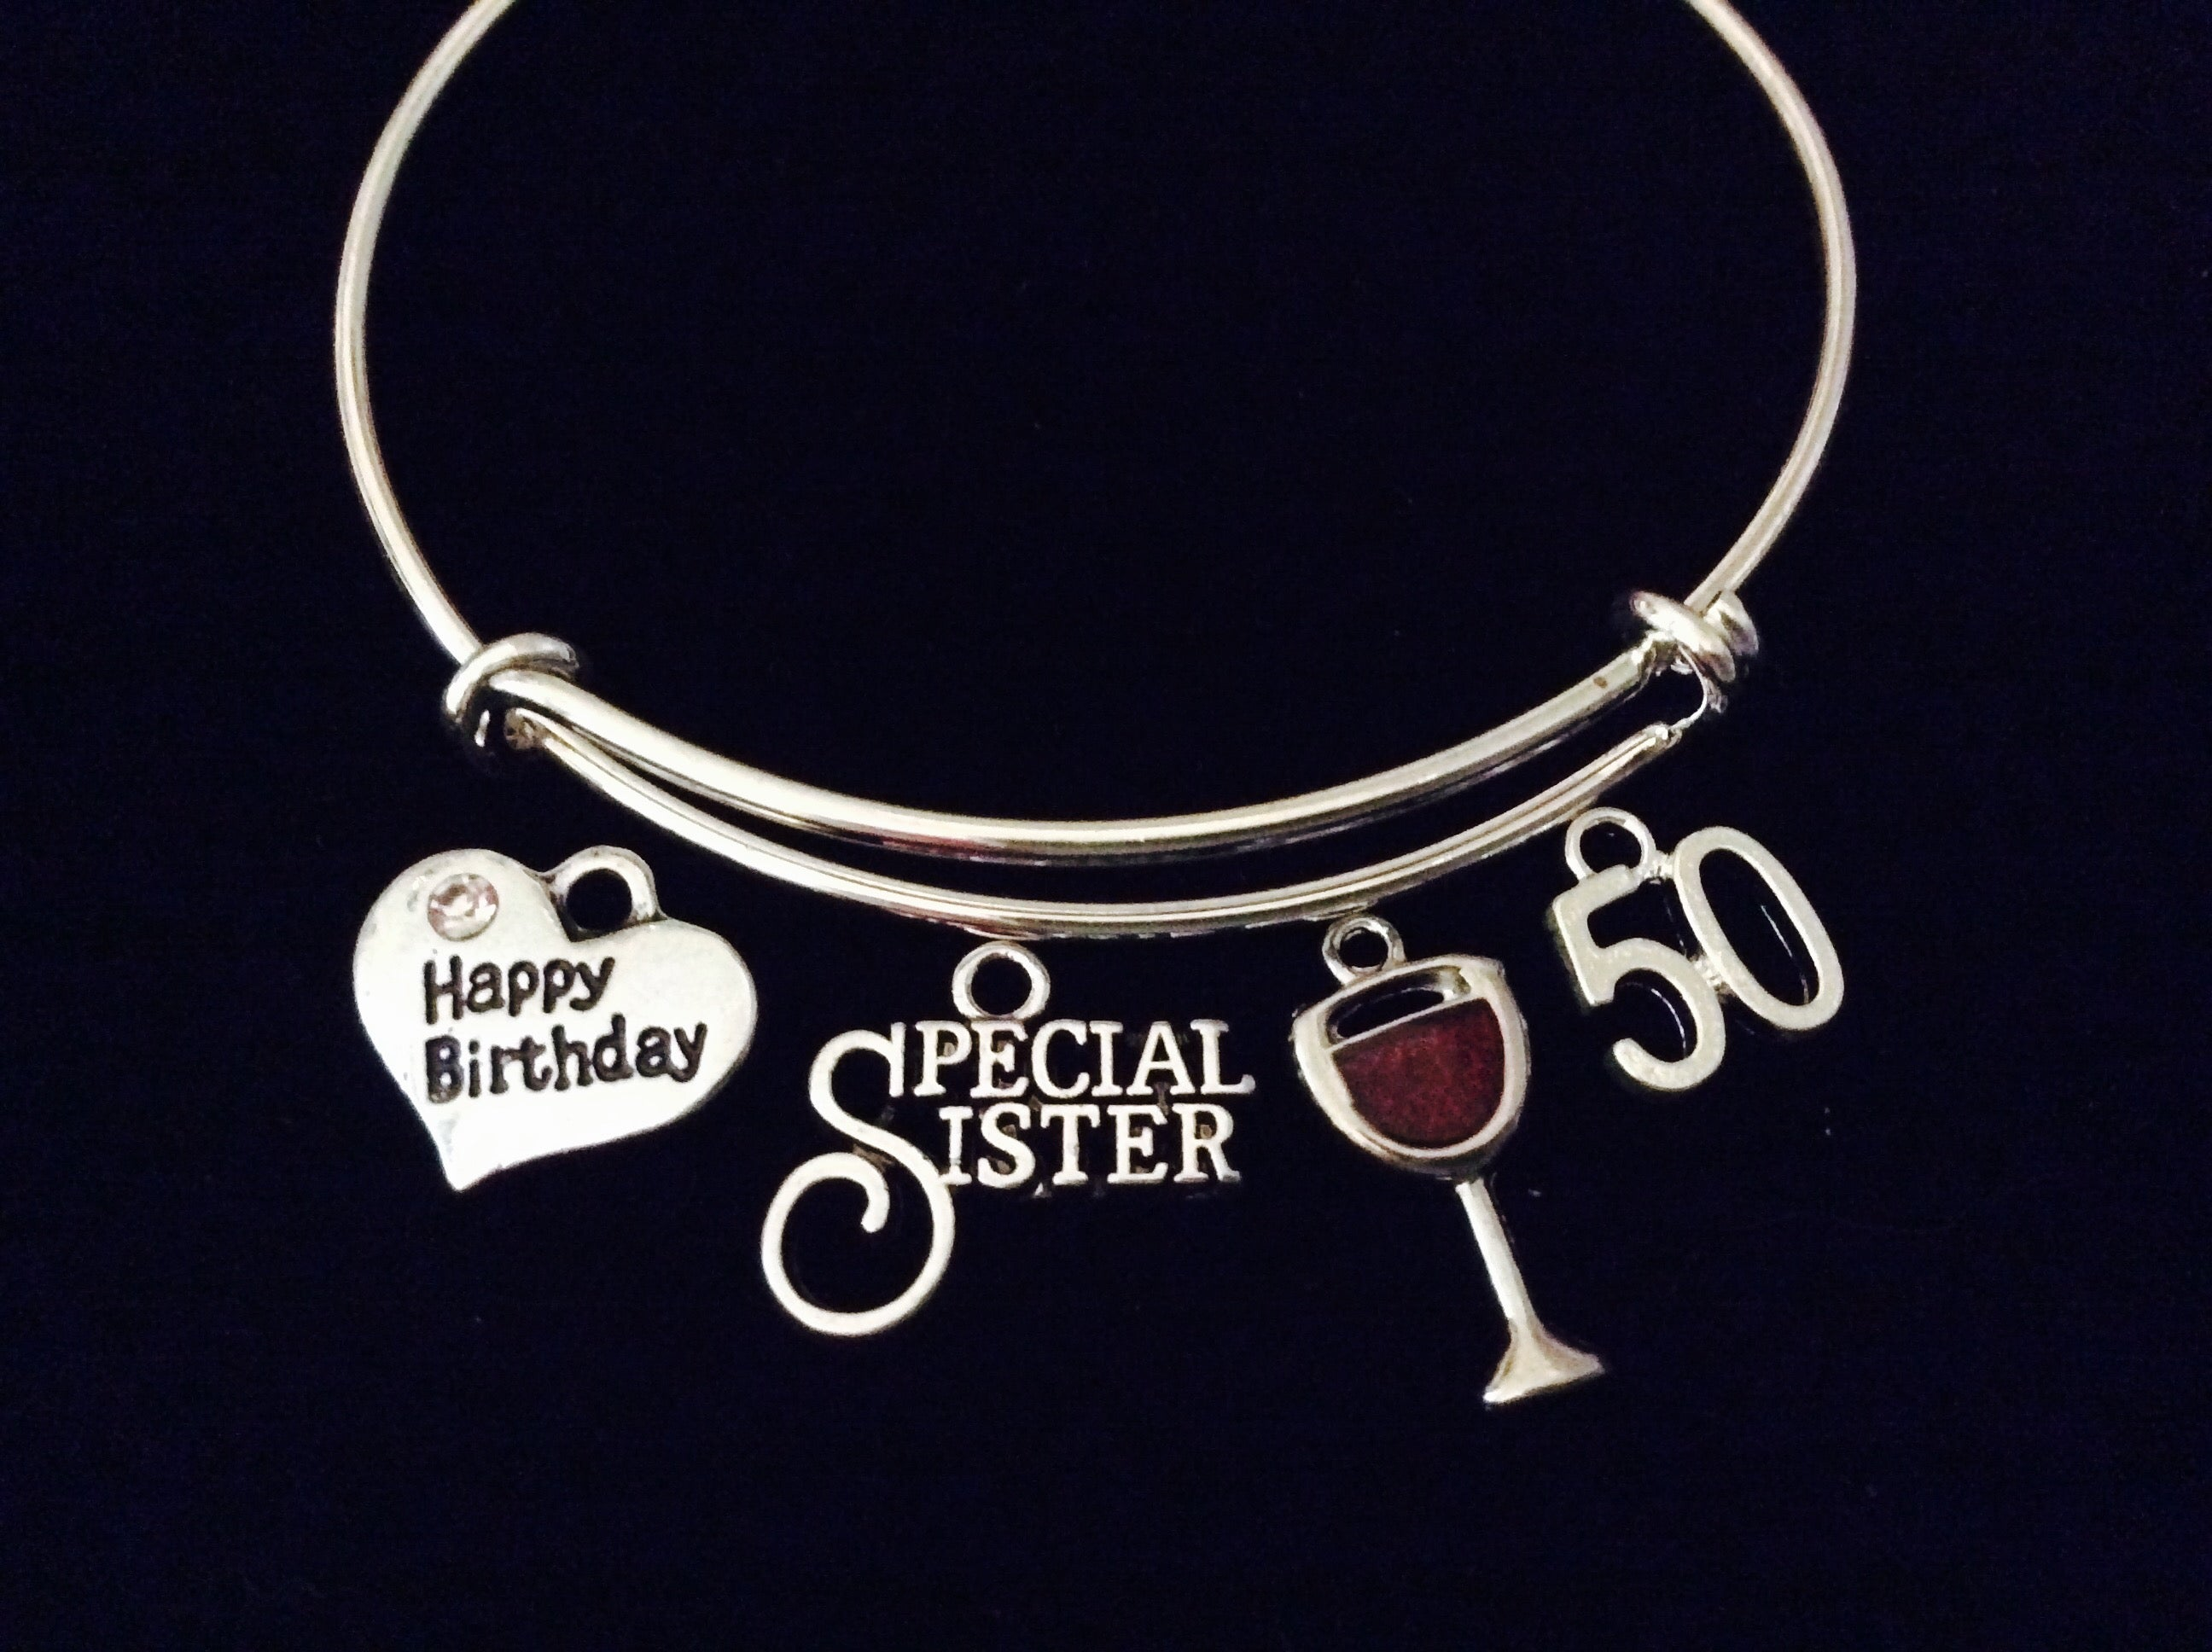 Happy 50th Birthday Special Sister Adjustable Bracelet Expandable Char